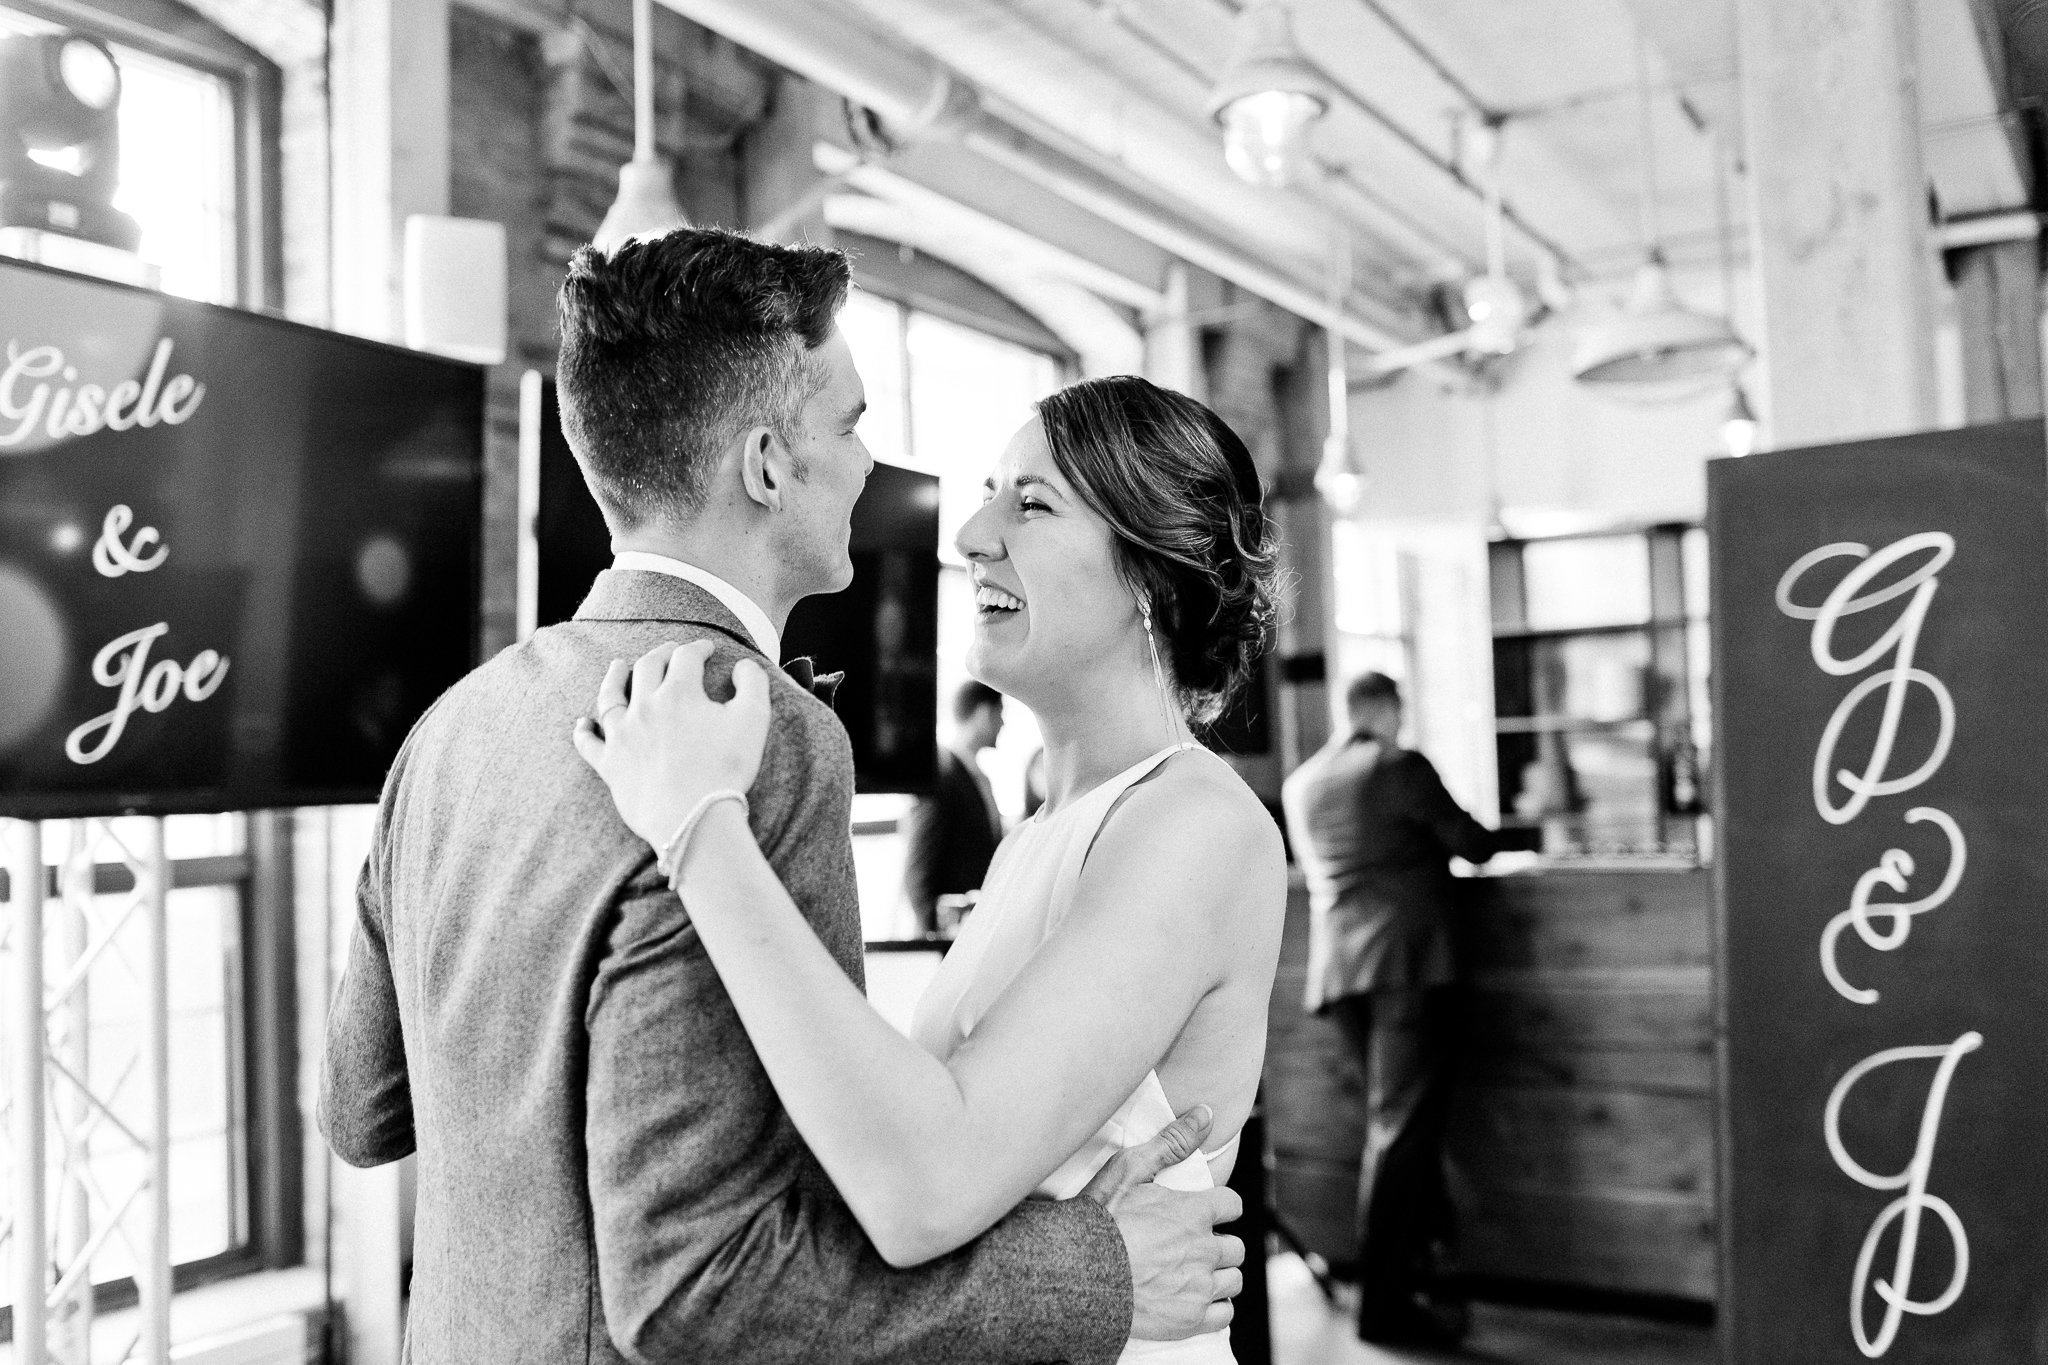 photographe-mariage-soupesoup-lisa-renault-photographie-montreal-wedding-photographer-88